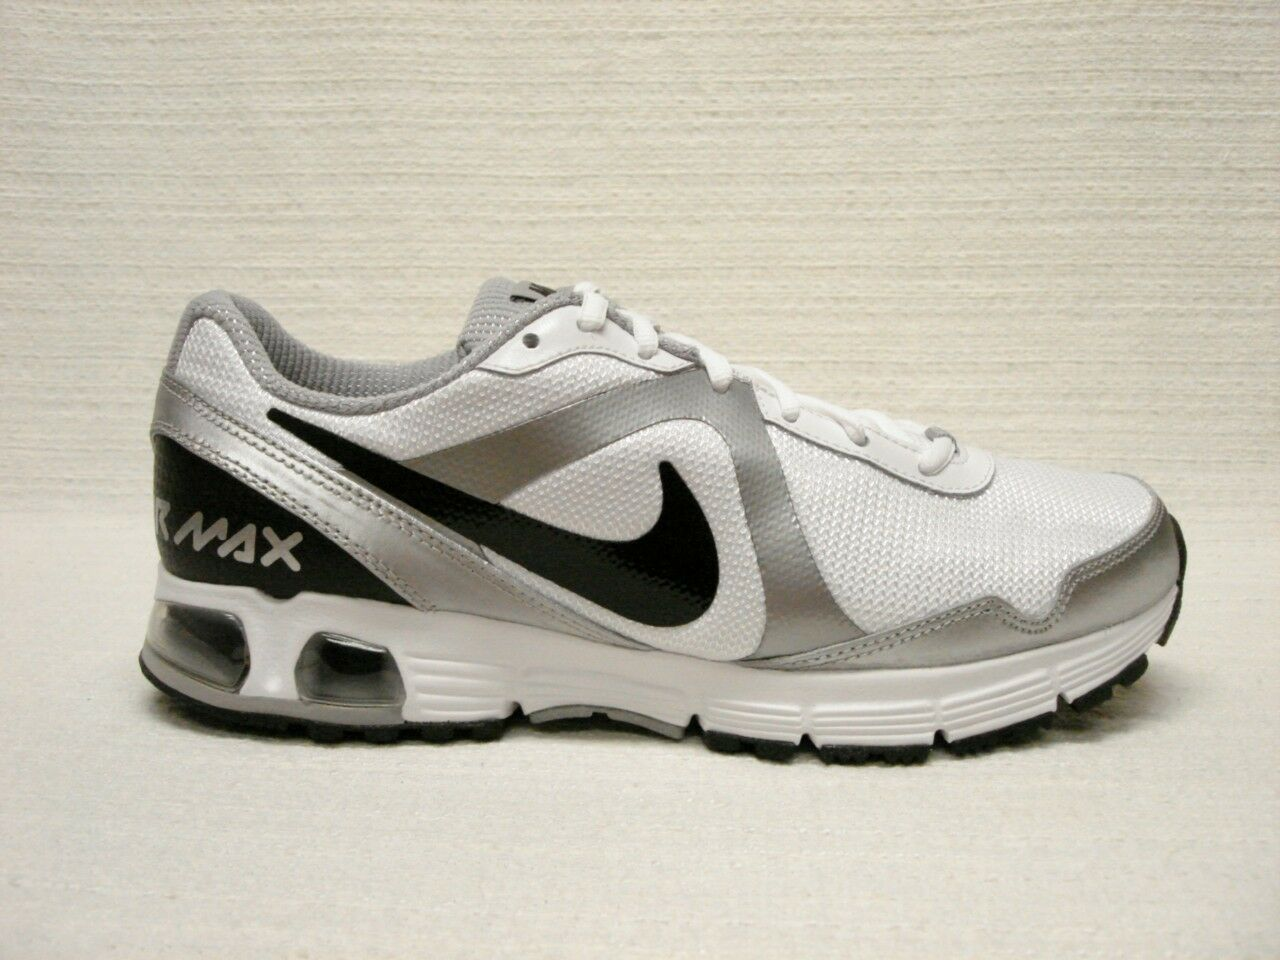 NIB NIKE NIKE NIKE AIR MAX RUN LITE+ MEN'S SHOE'S8.5WHITEBLACK d89436